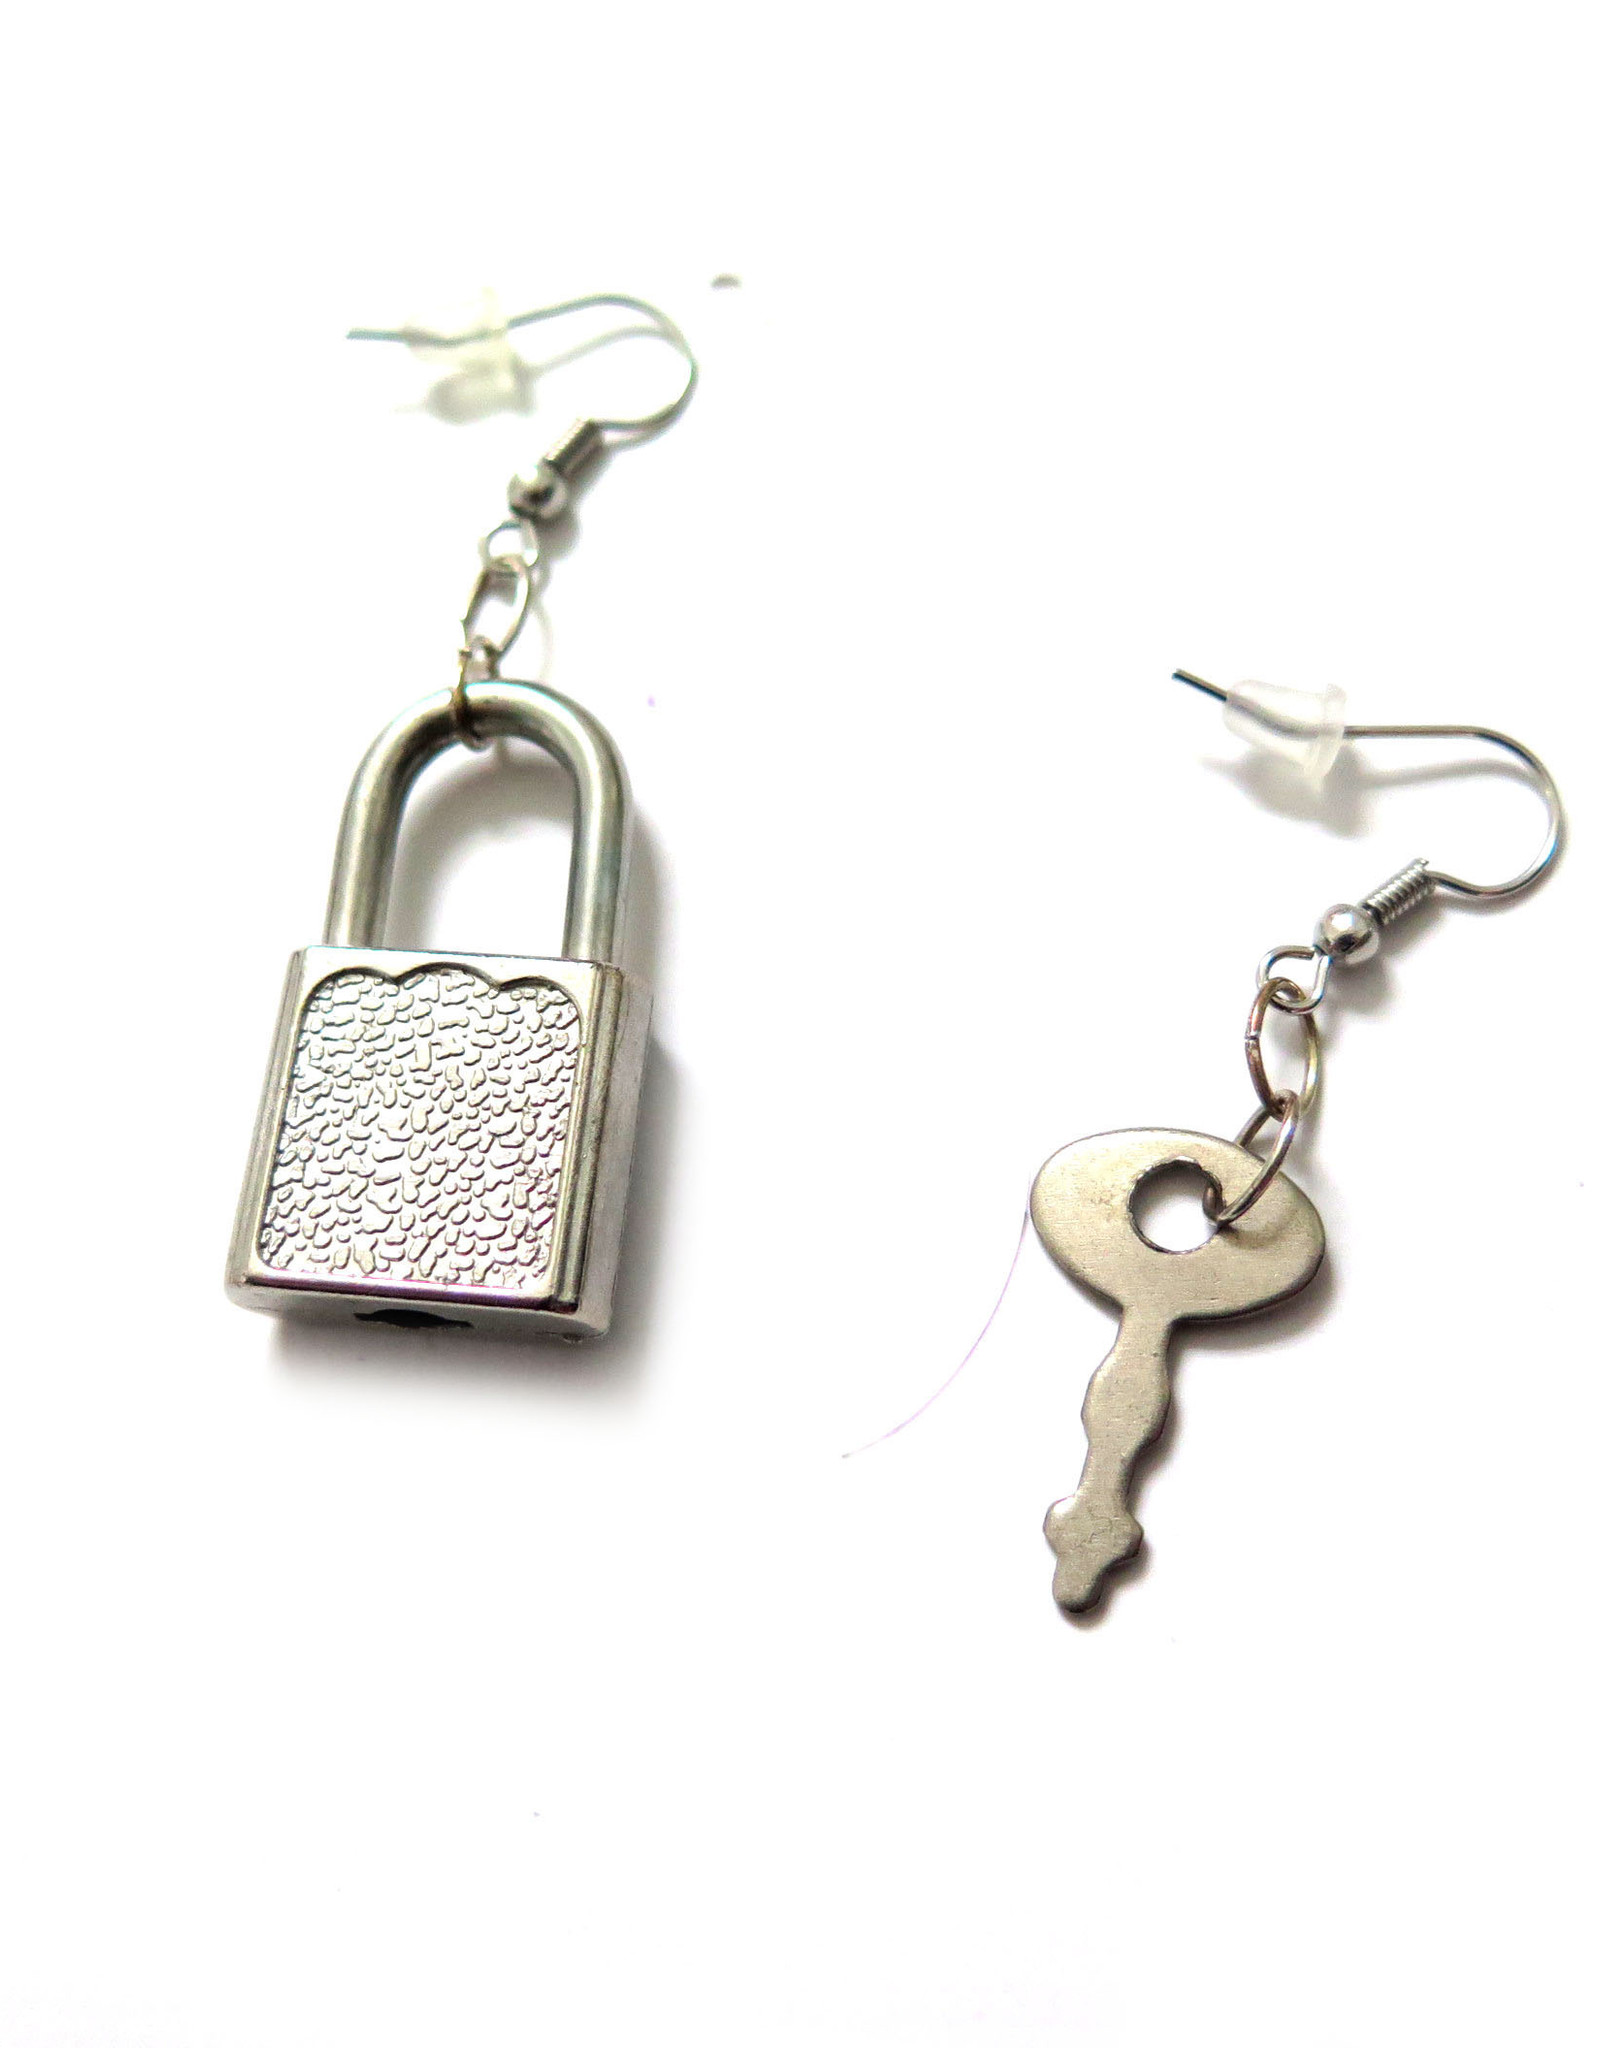 Key/Lock mixed media earring by Spooky Spectacles